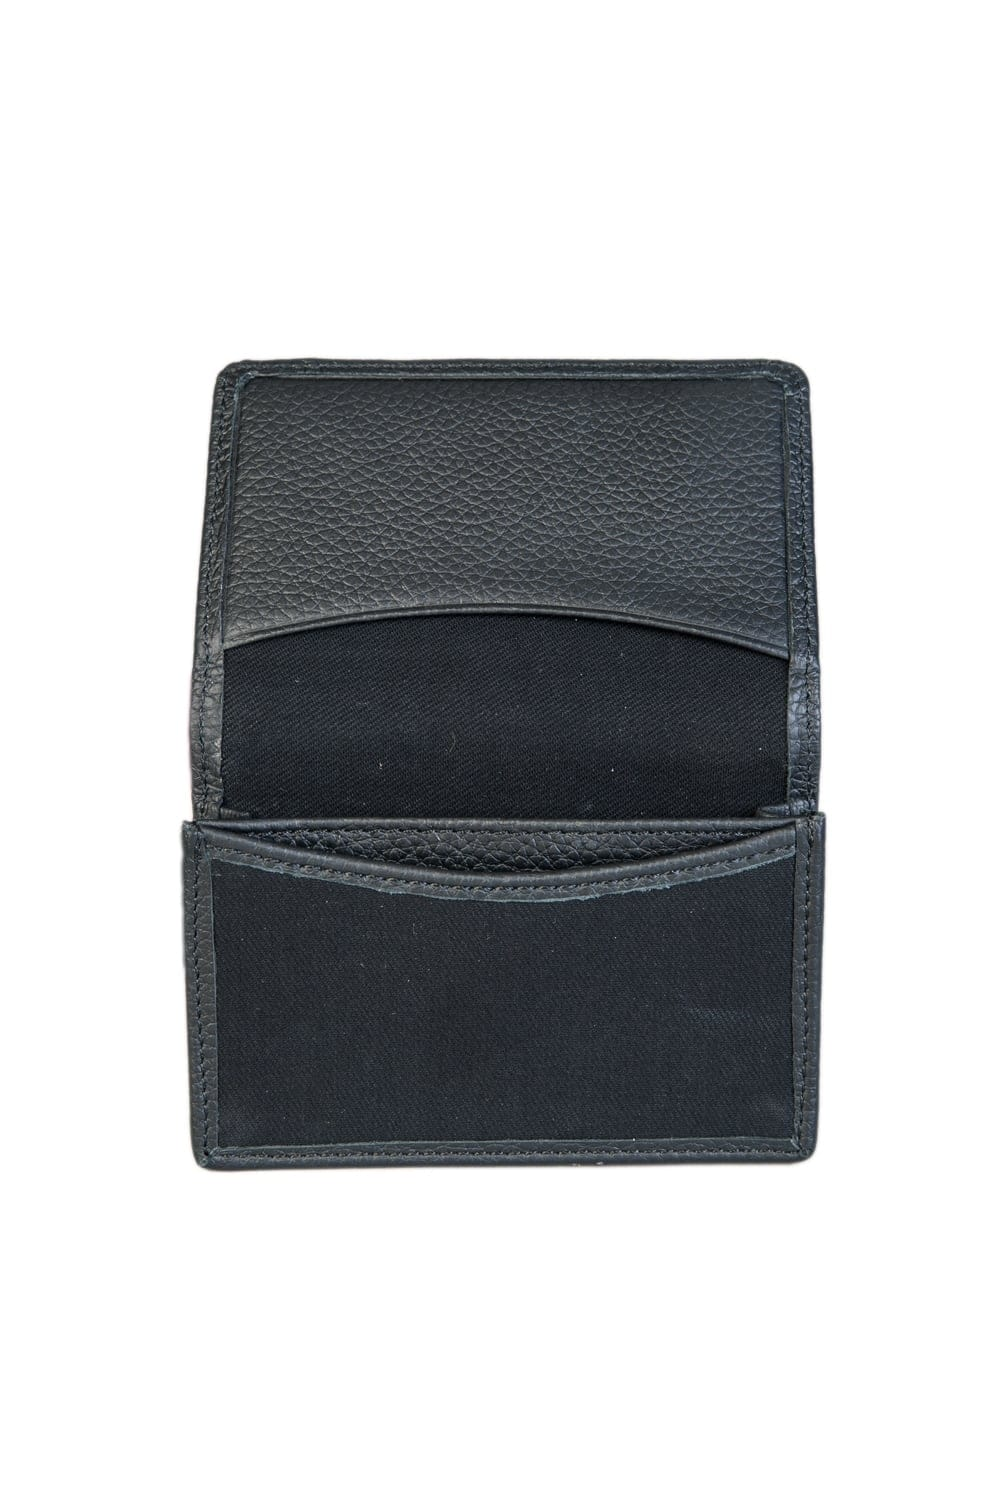 Boss giveaway business card holder wallet 70007338 0007385684 boss giveaway business card holder wallet 70007338 0007385684 magicingreecefo Image collections